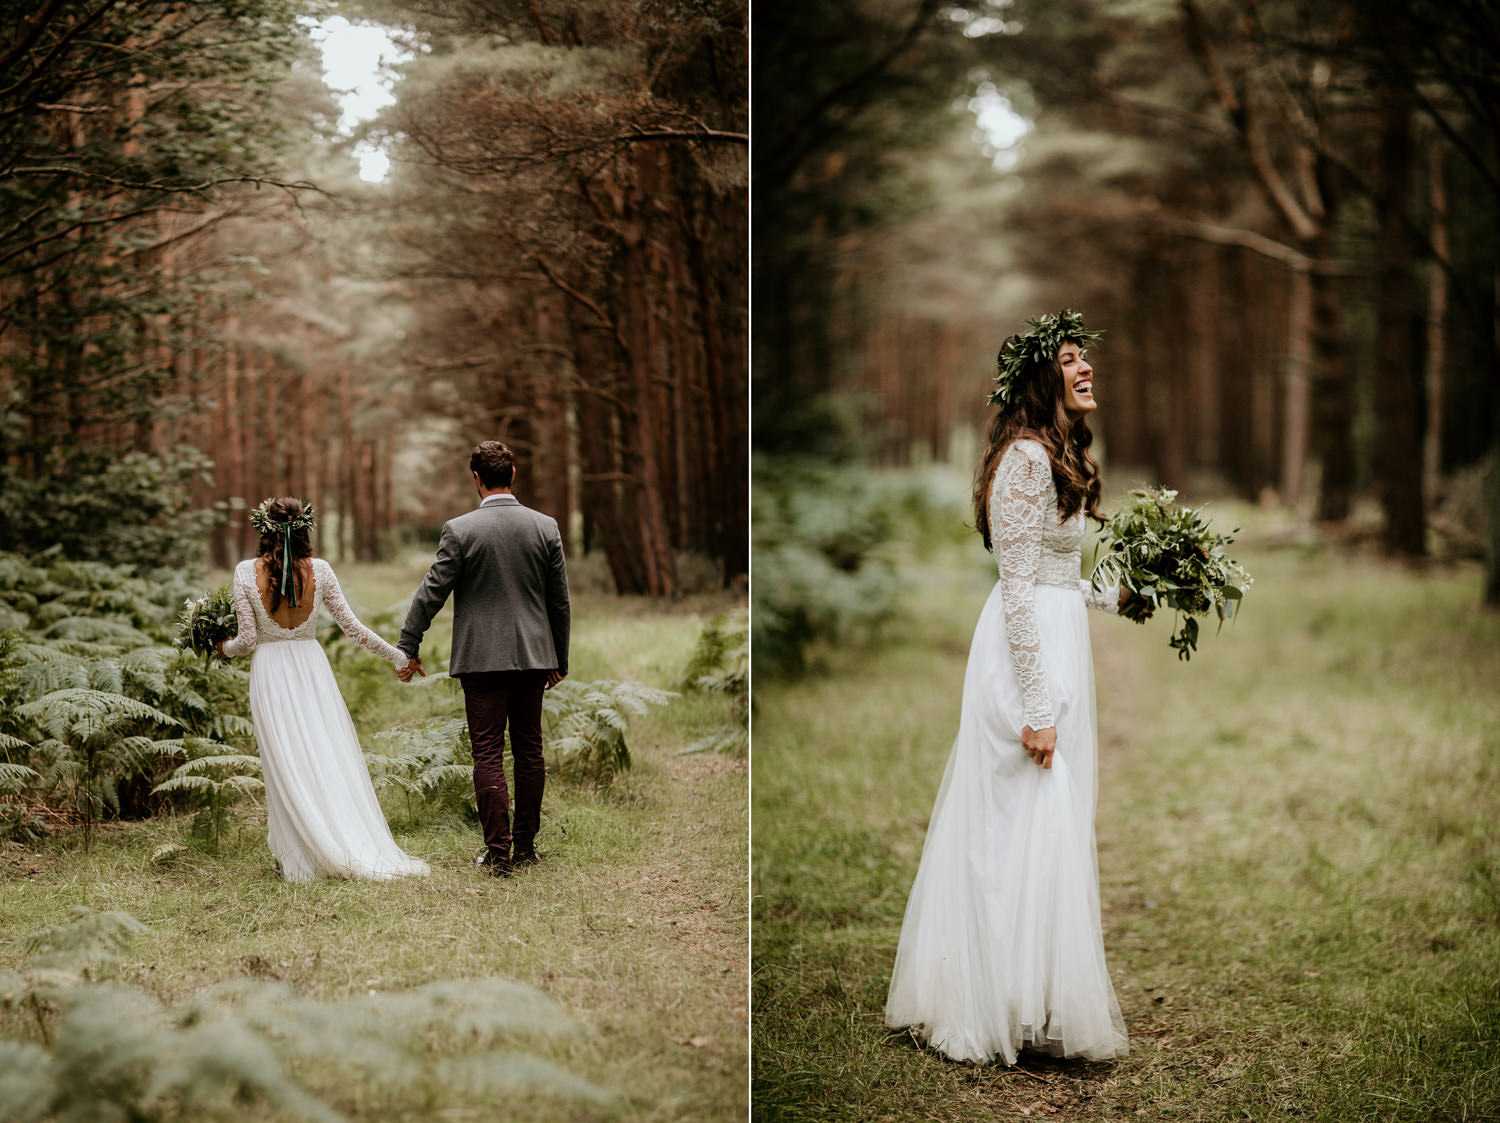 Wear your love wedding dress for an ethical bride during their forest wedding in Scotland